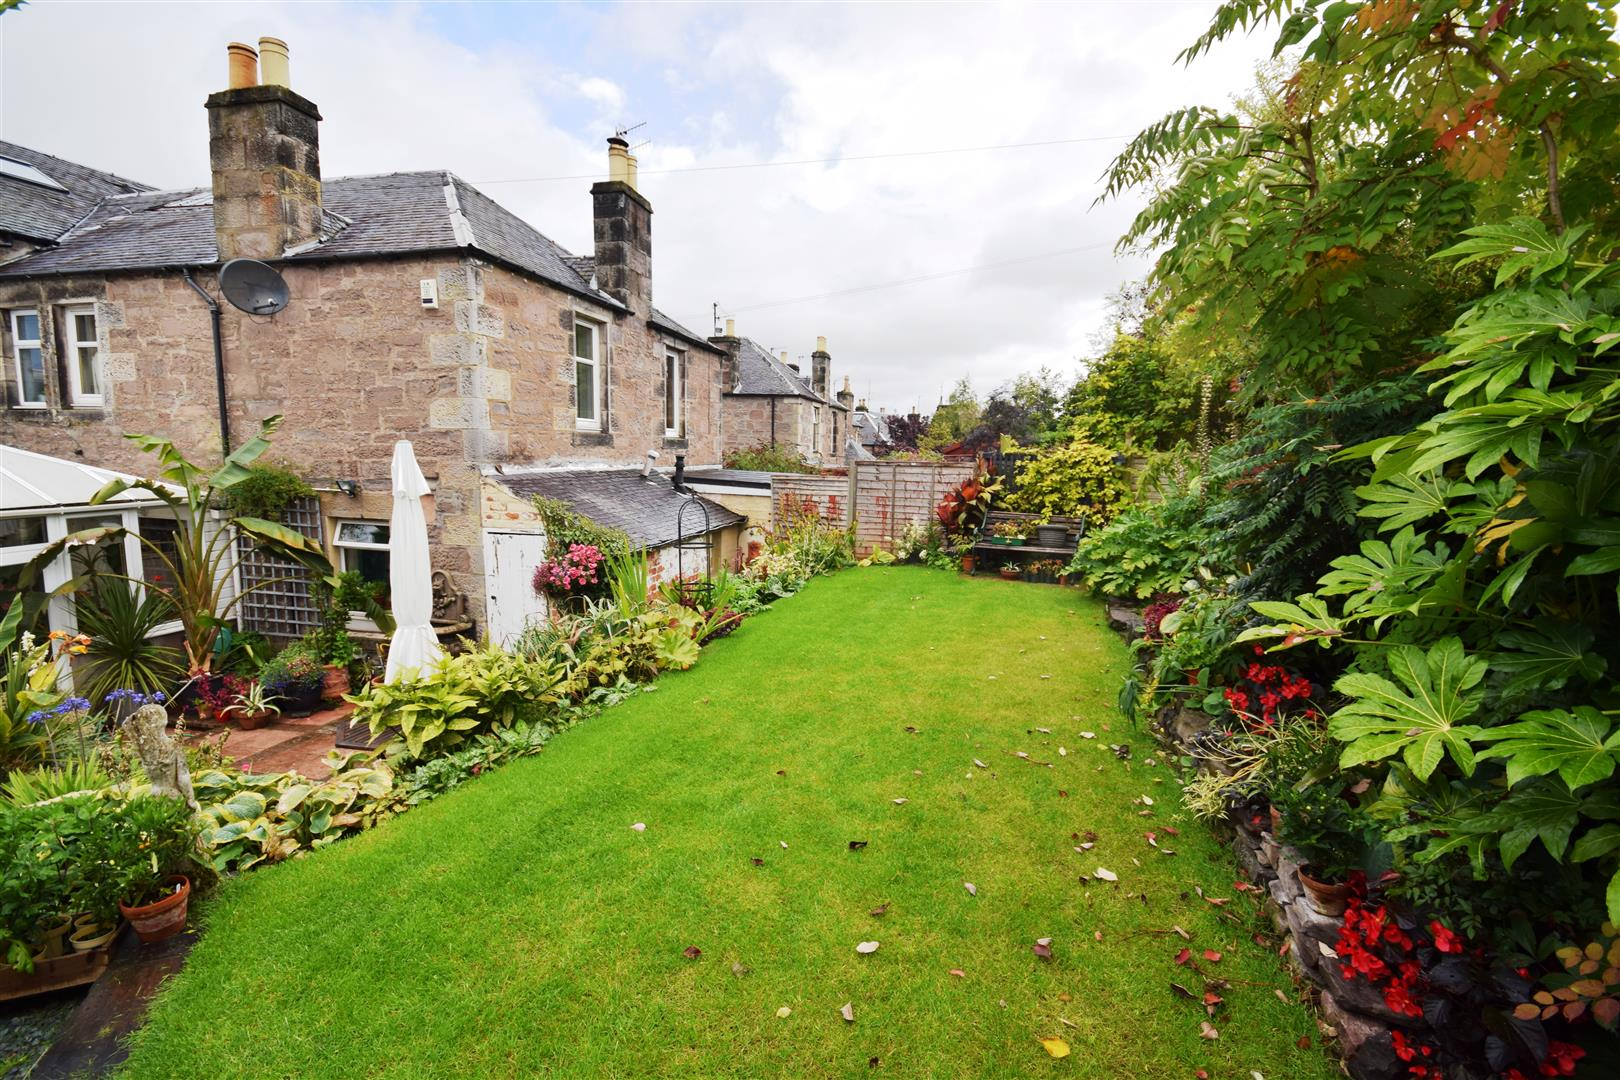 58, Glasgow Road, Perth, Perthshire, PH2 0PB, UK